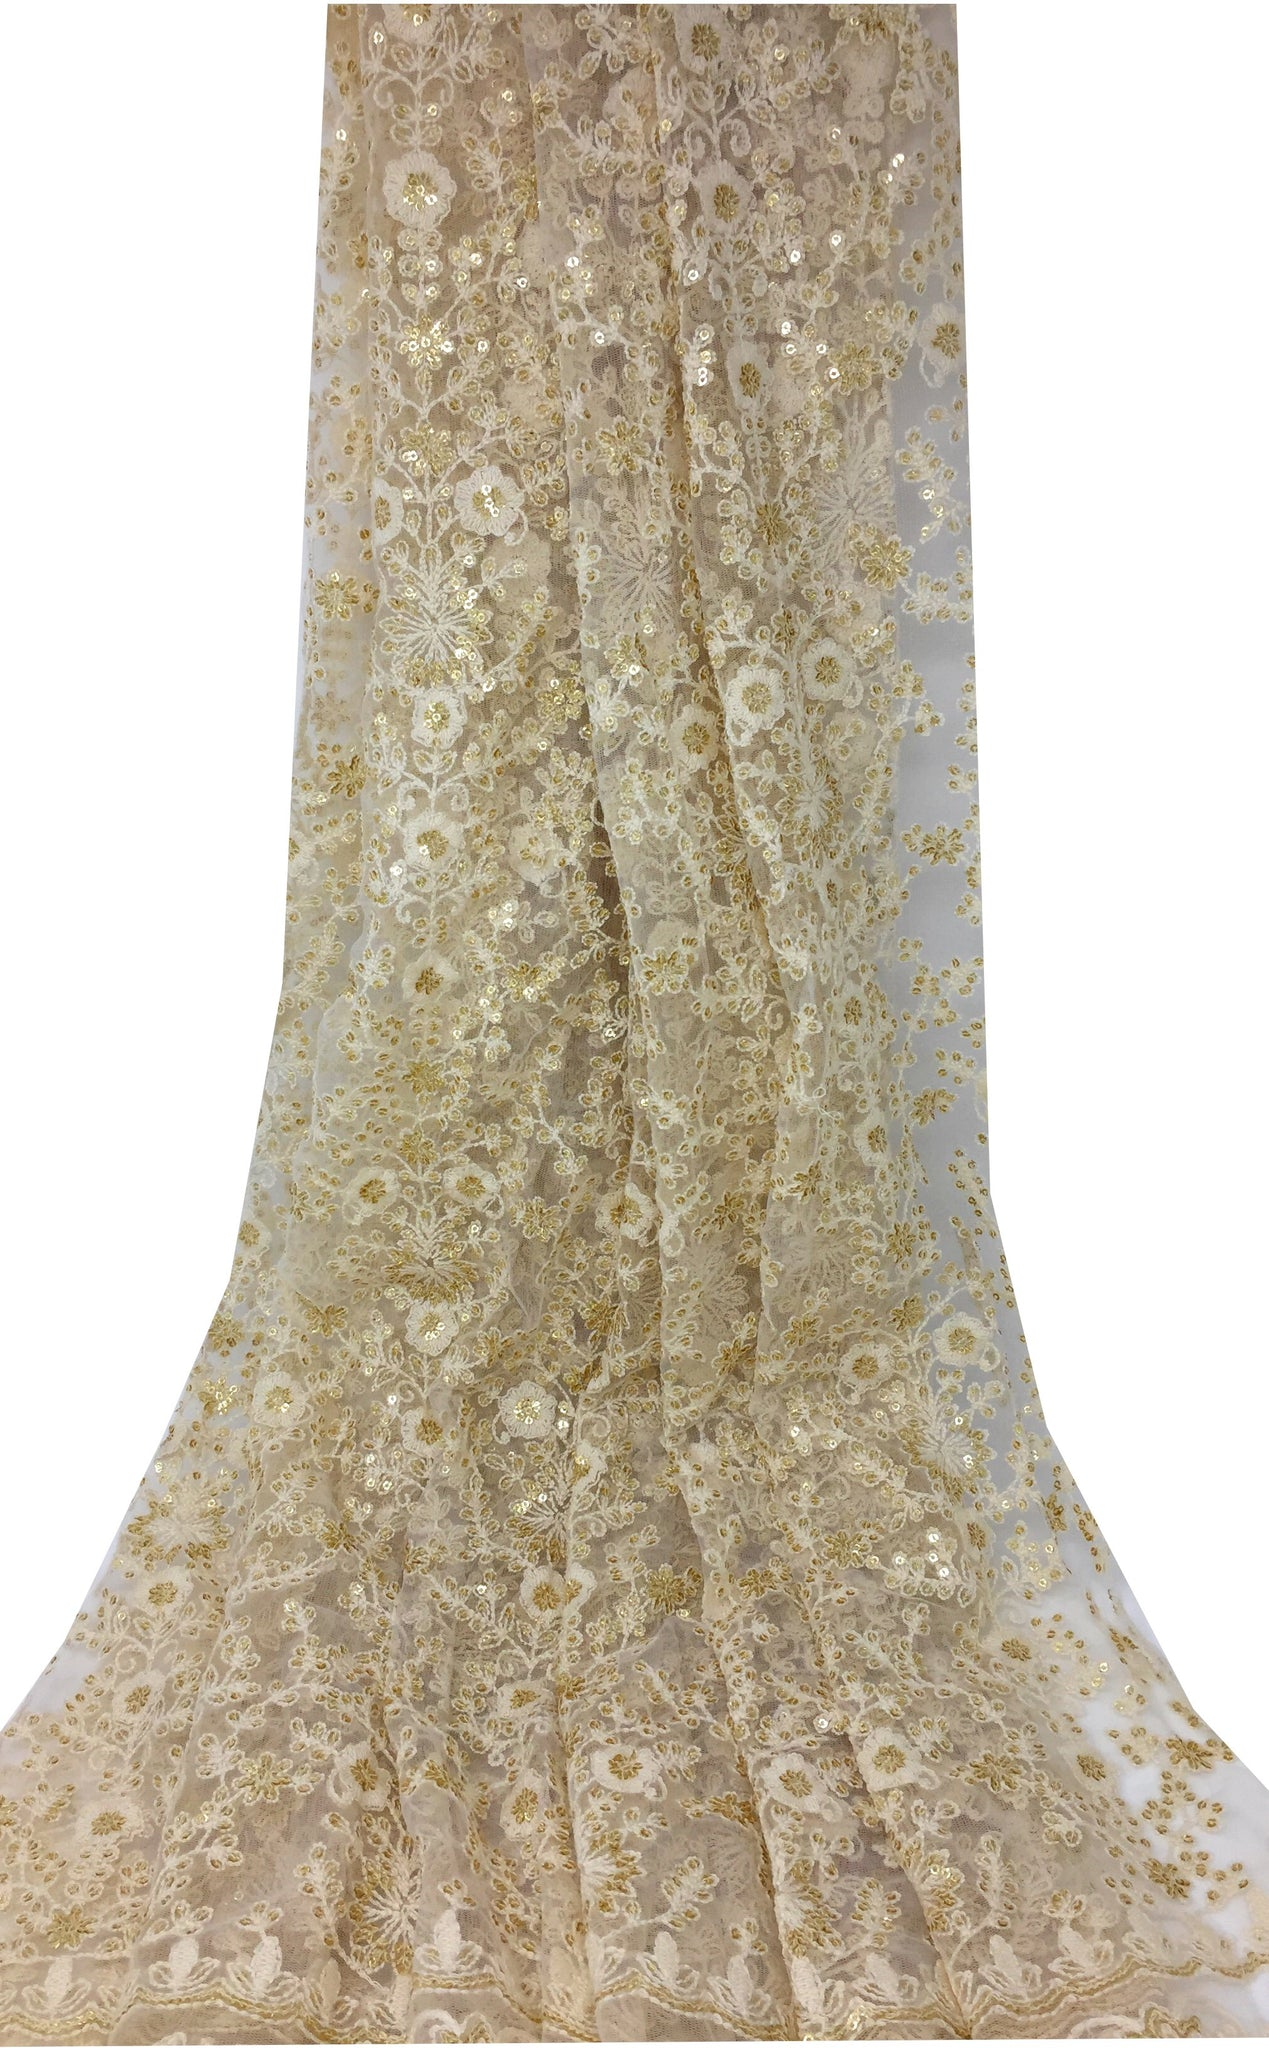 White Embroidered Fabric With Gold Sequins on Net Mesh Tulle Base